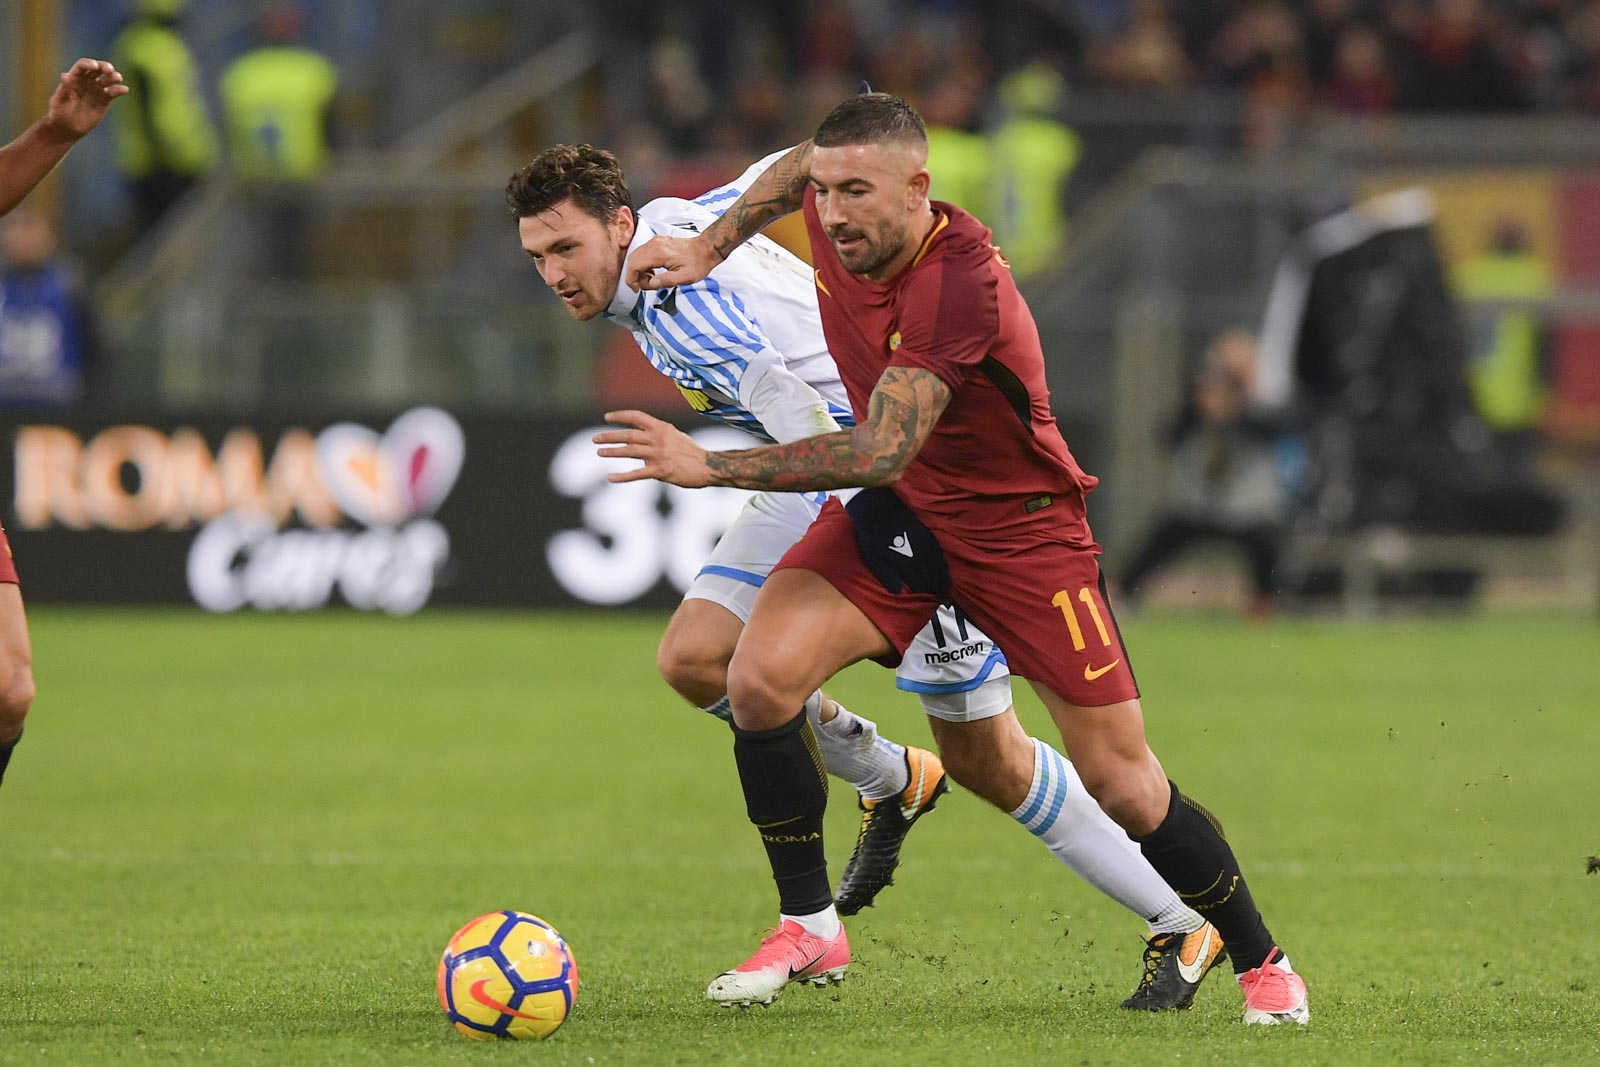 AS Roma 3-1 SPAL 2013 Highlights